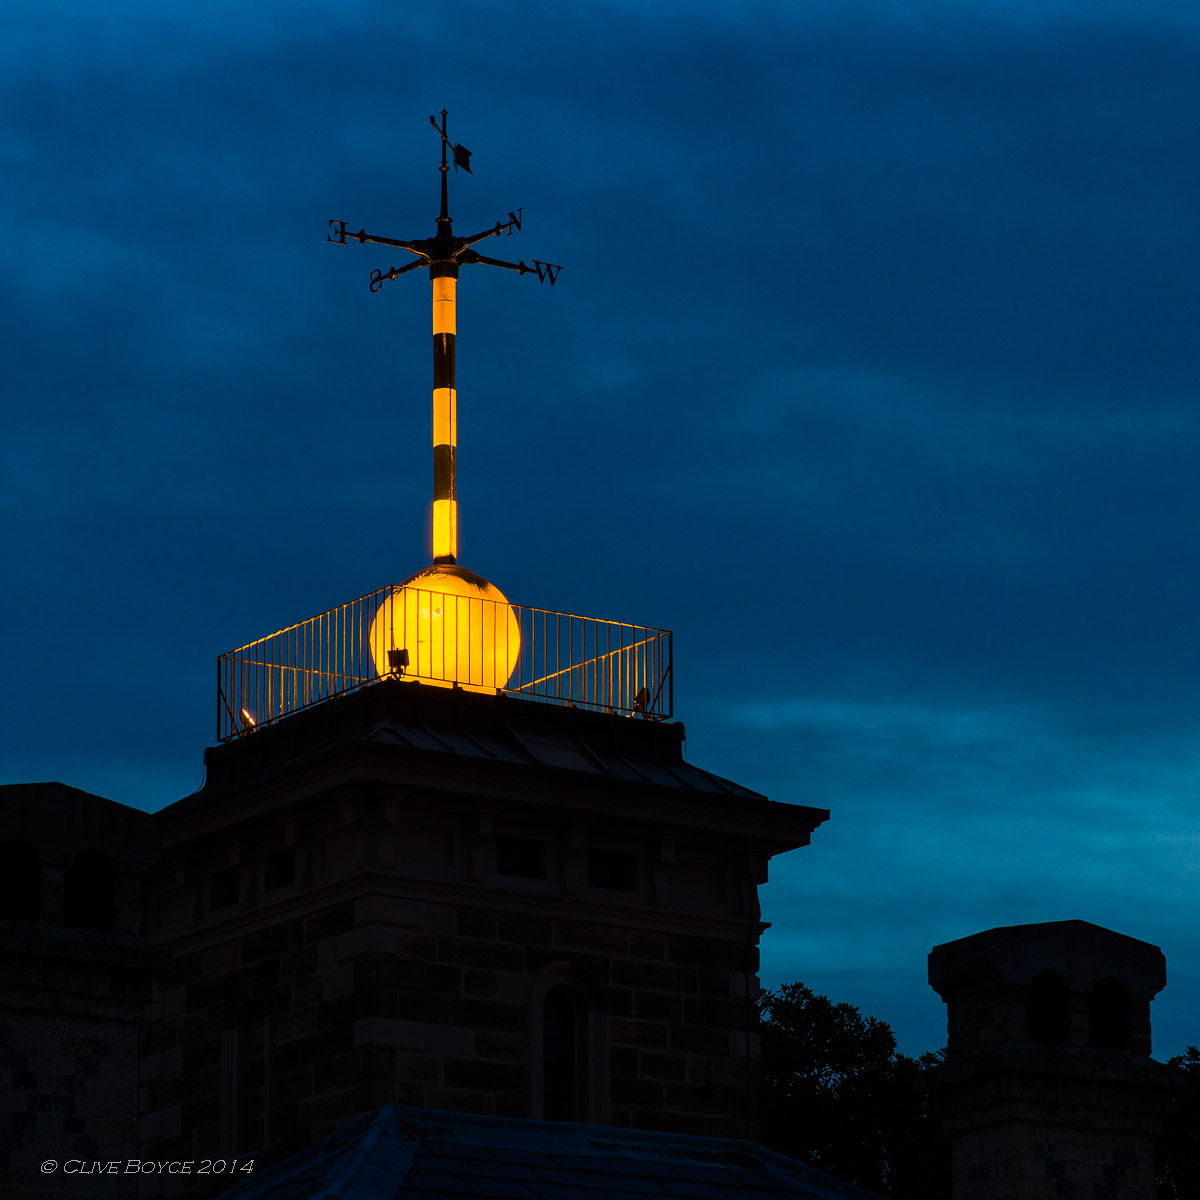 The Time Ball, Sydney Observatory